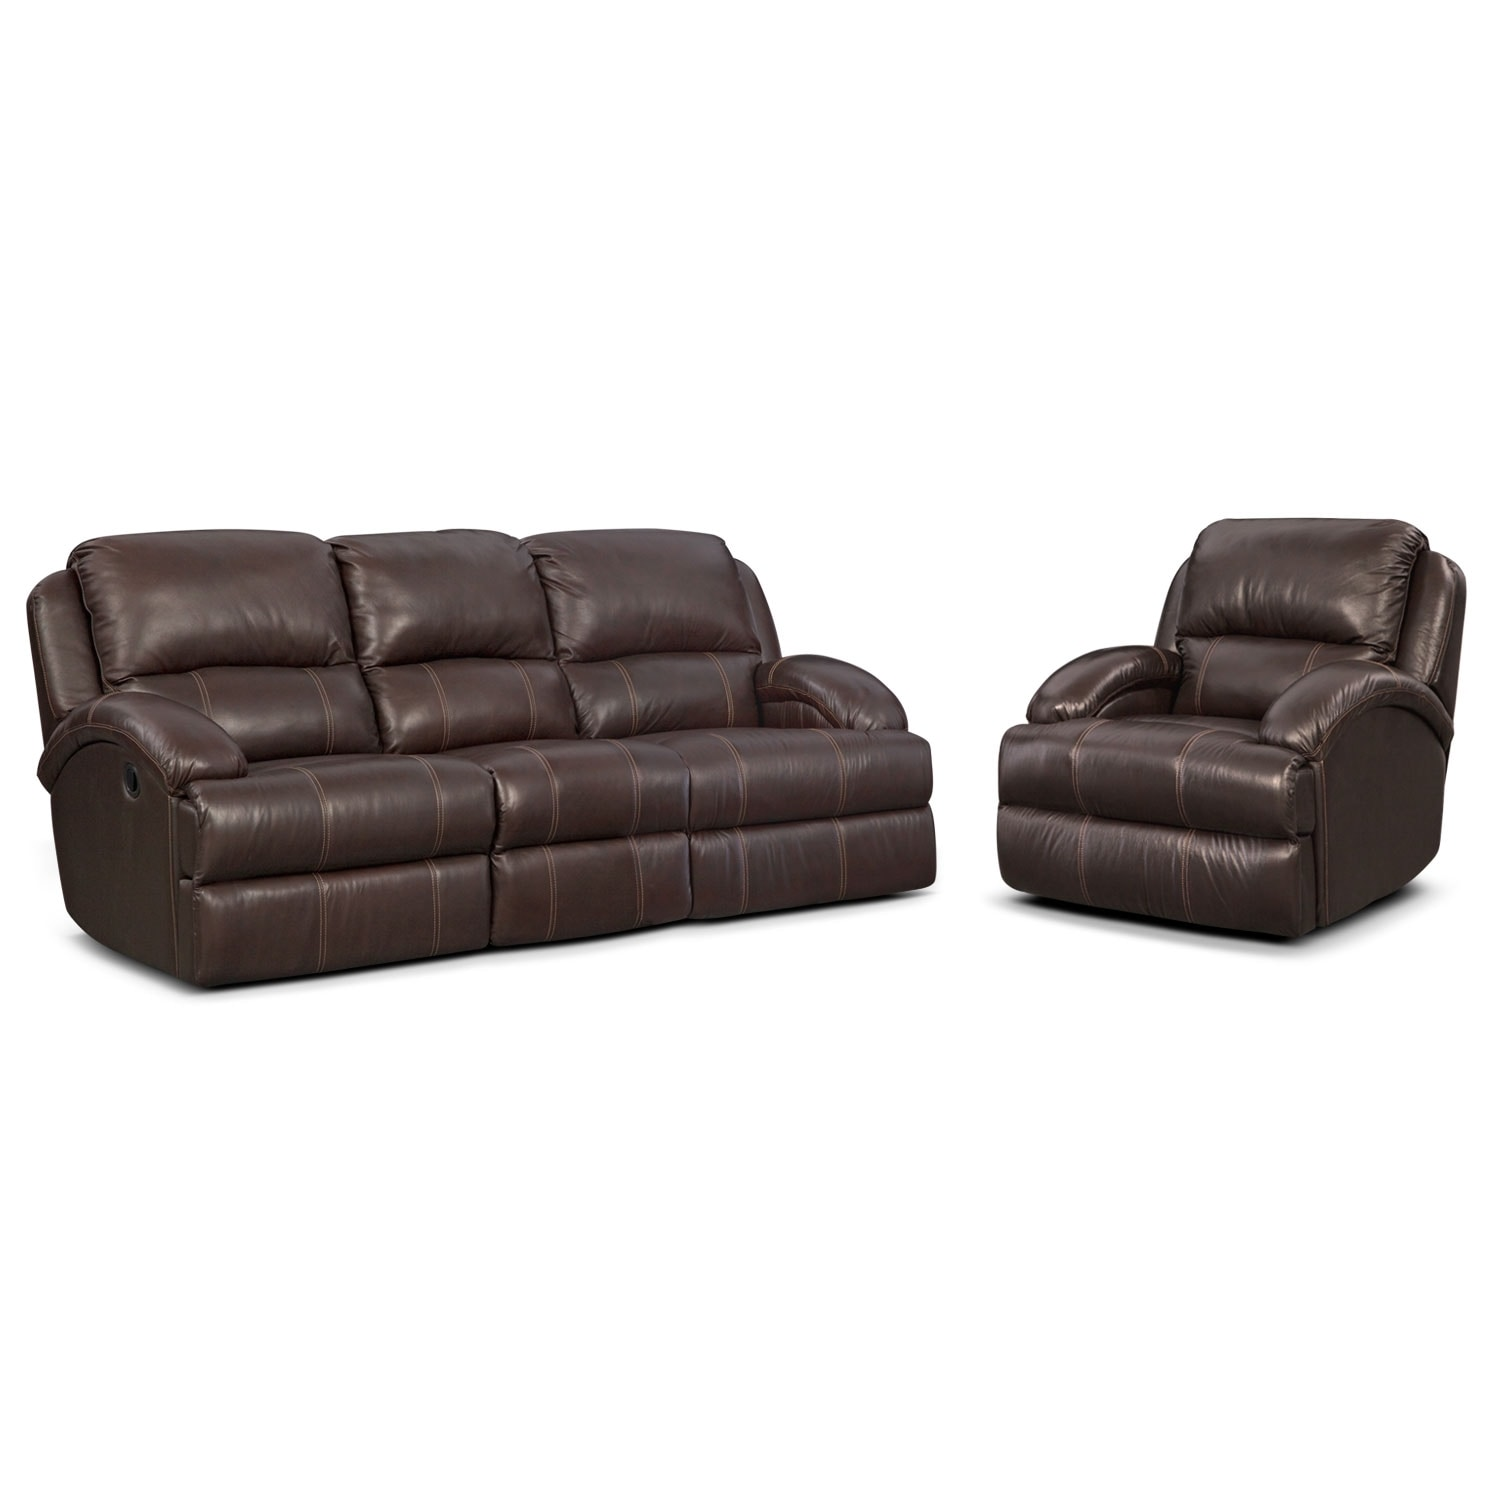 Living Room Furniture - Nolan 2 Pc. Reclining Living Room w/Glider Recliner